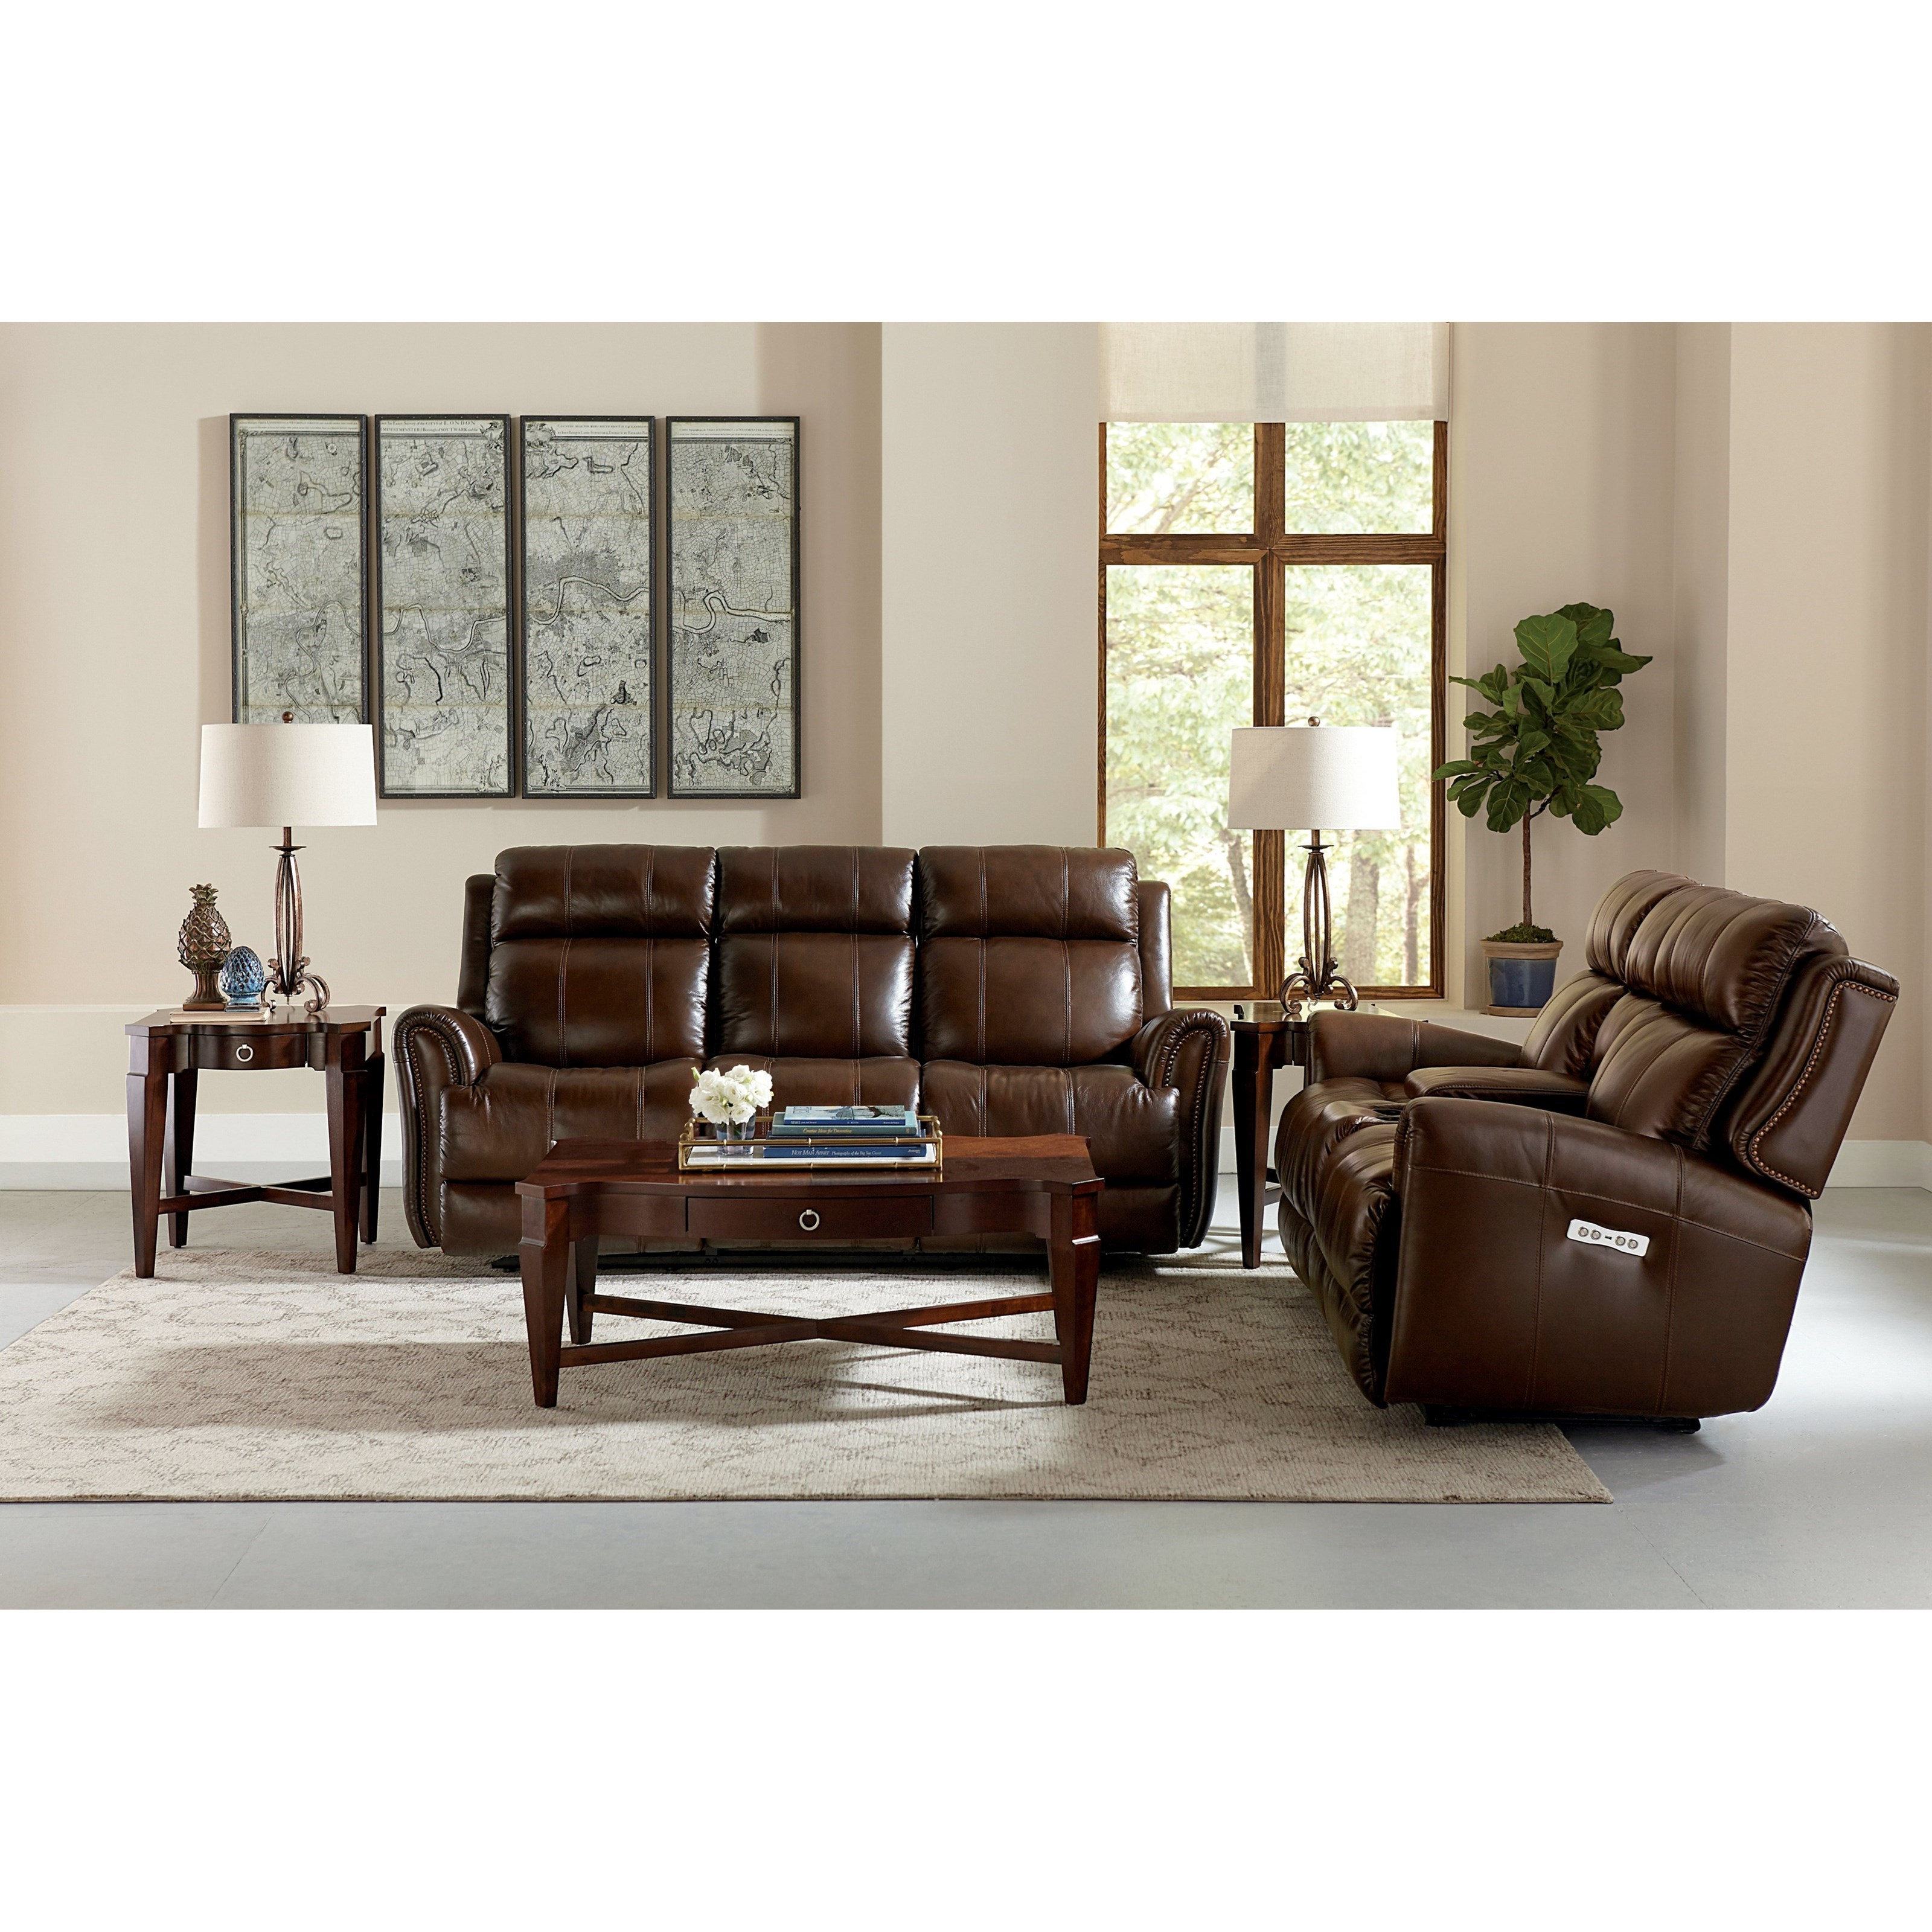 Marquee Reclining Living Room Group by Bassett at Esprit Decor Home Furnishings